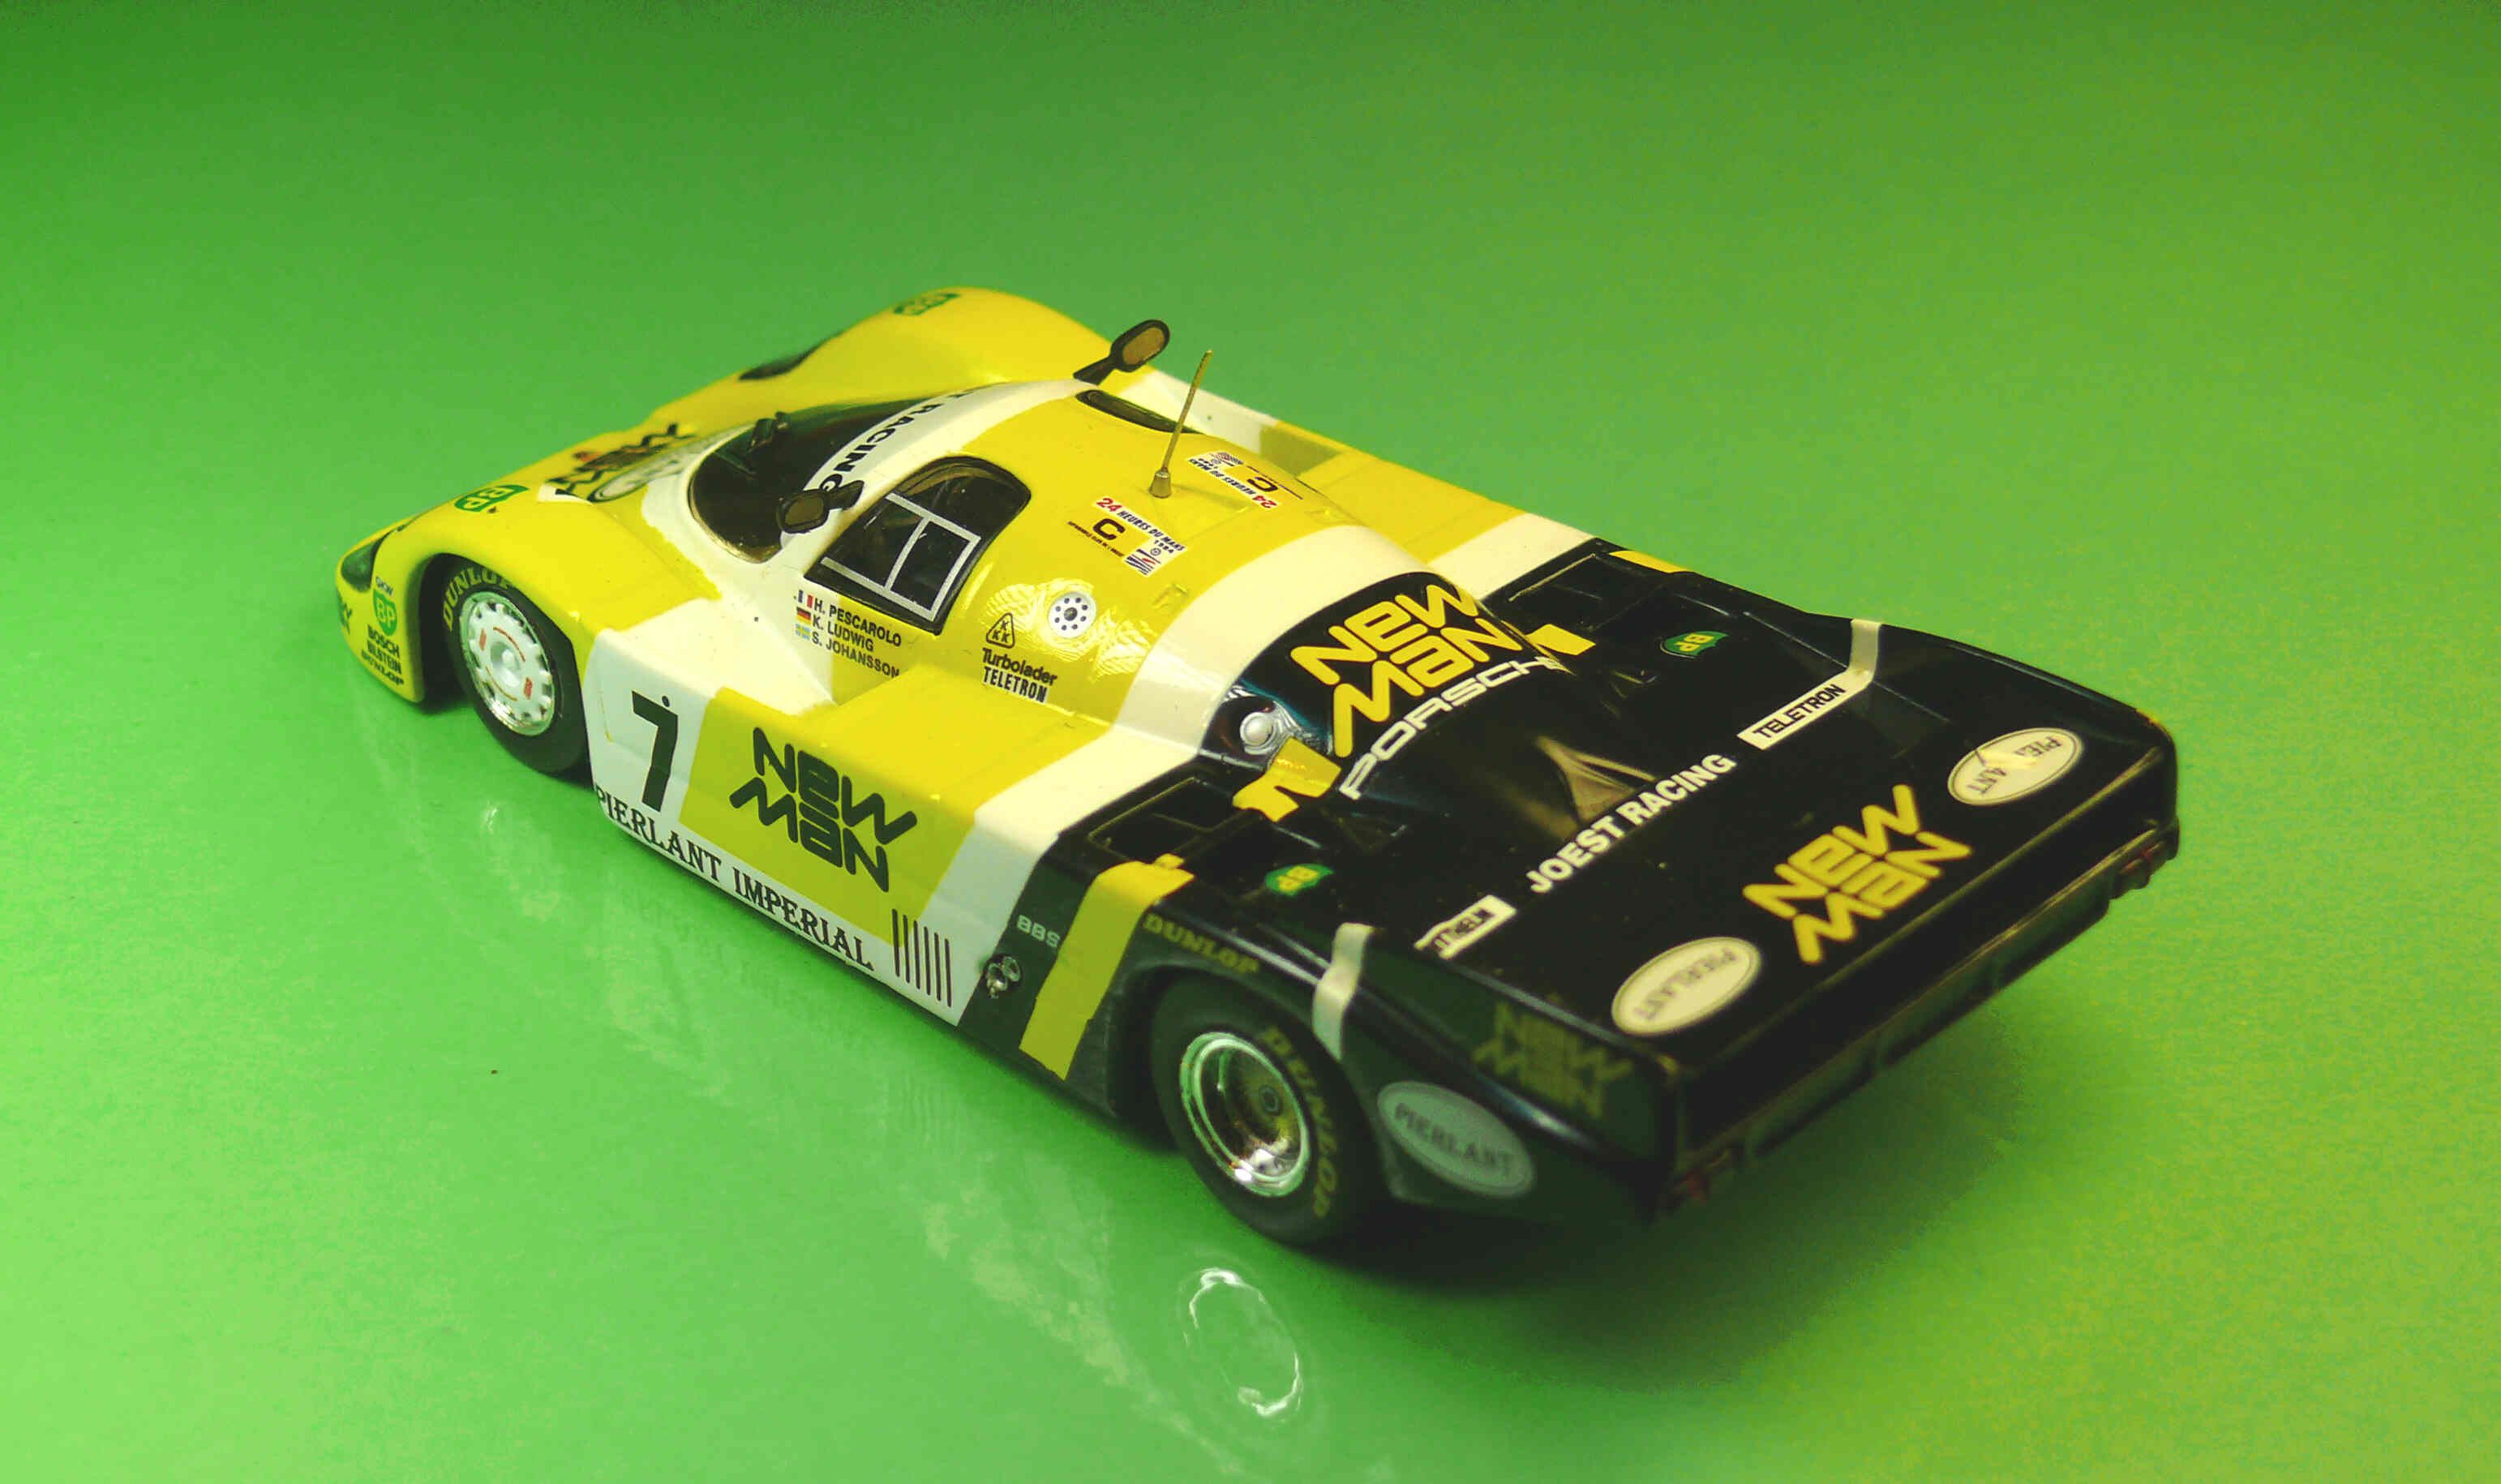 PORSCHE 956 - 1984 by METHANOL